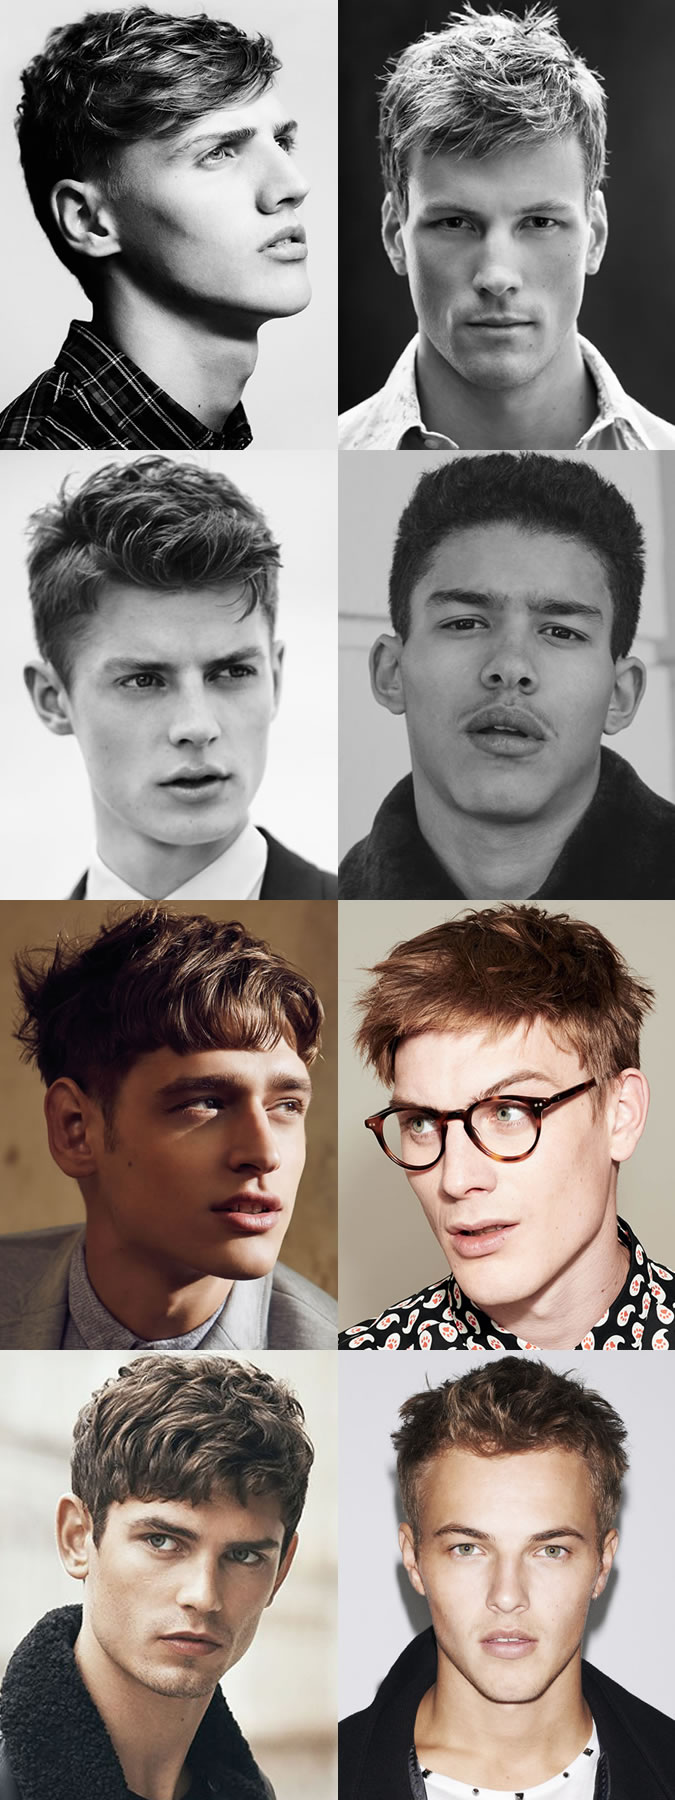 HairStyle Guide For Men – stylefk